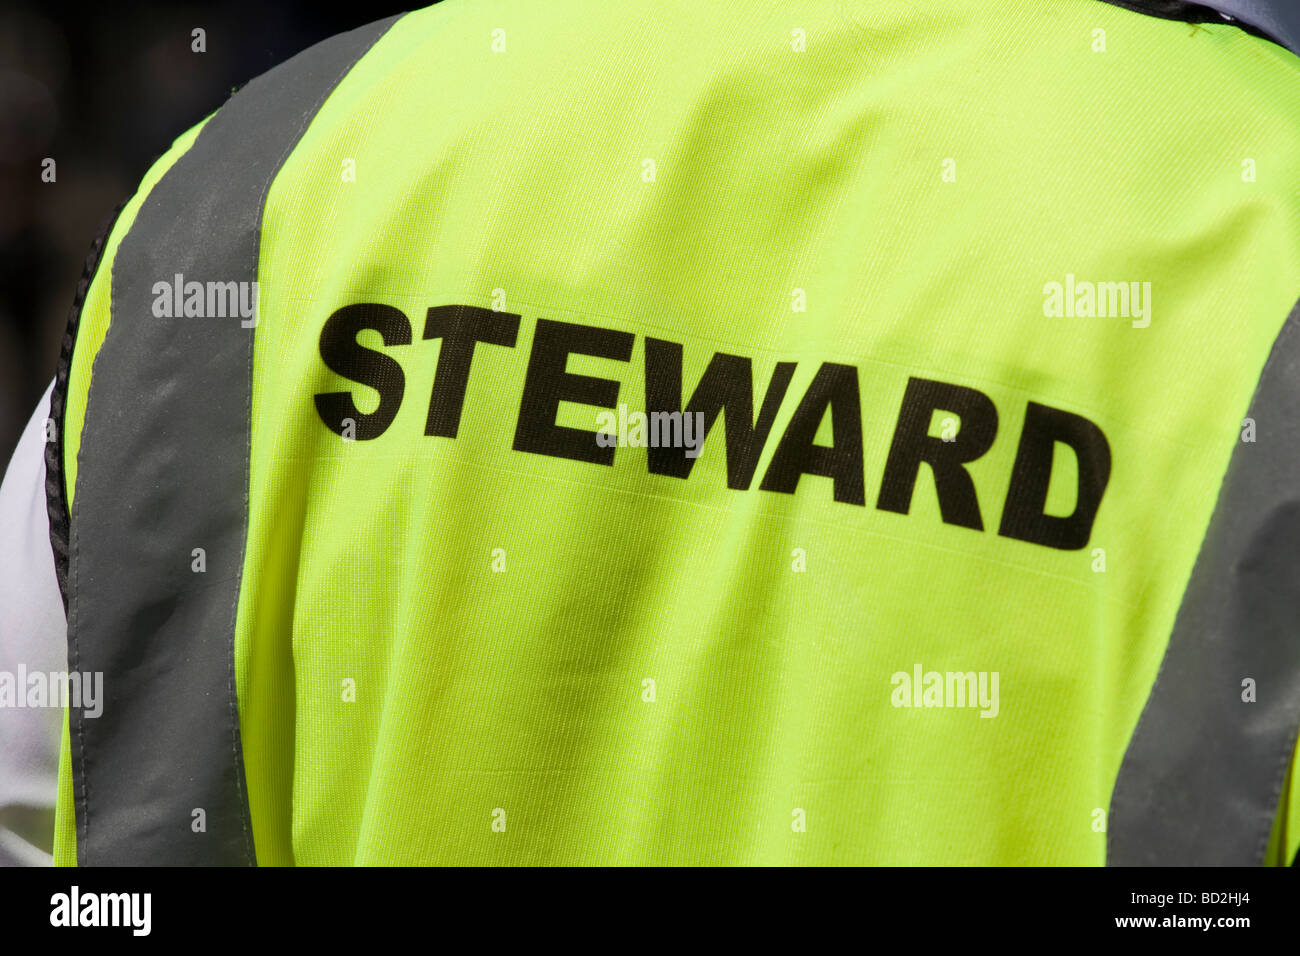 VestLondonEnglandUk Steward In A Stock High Photo Visibility CoxedB